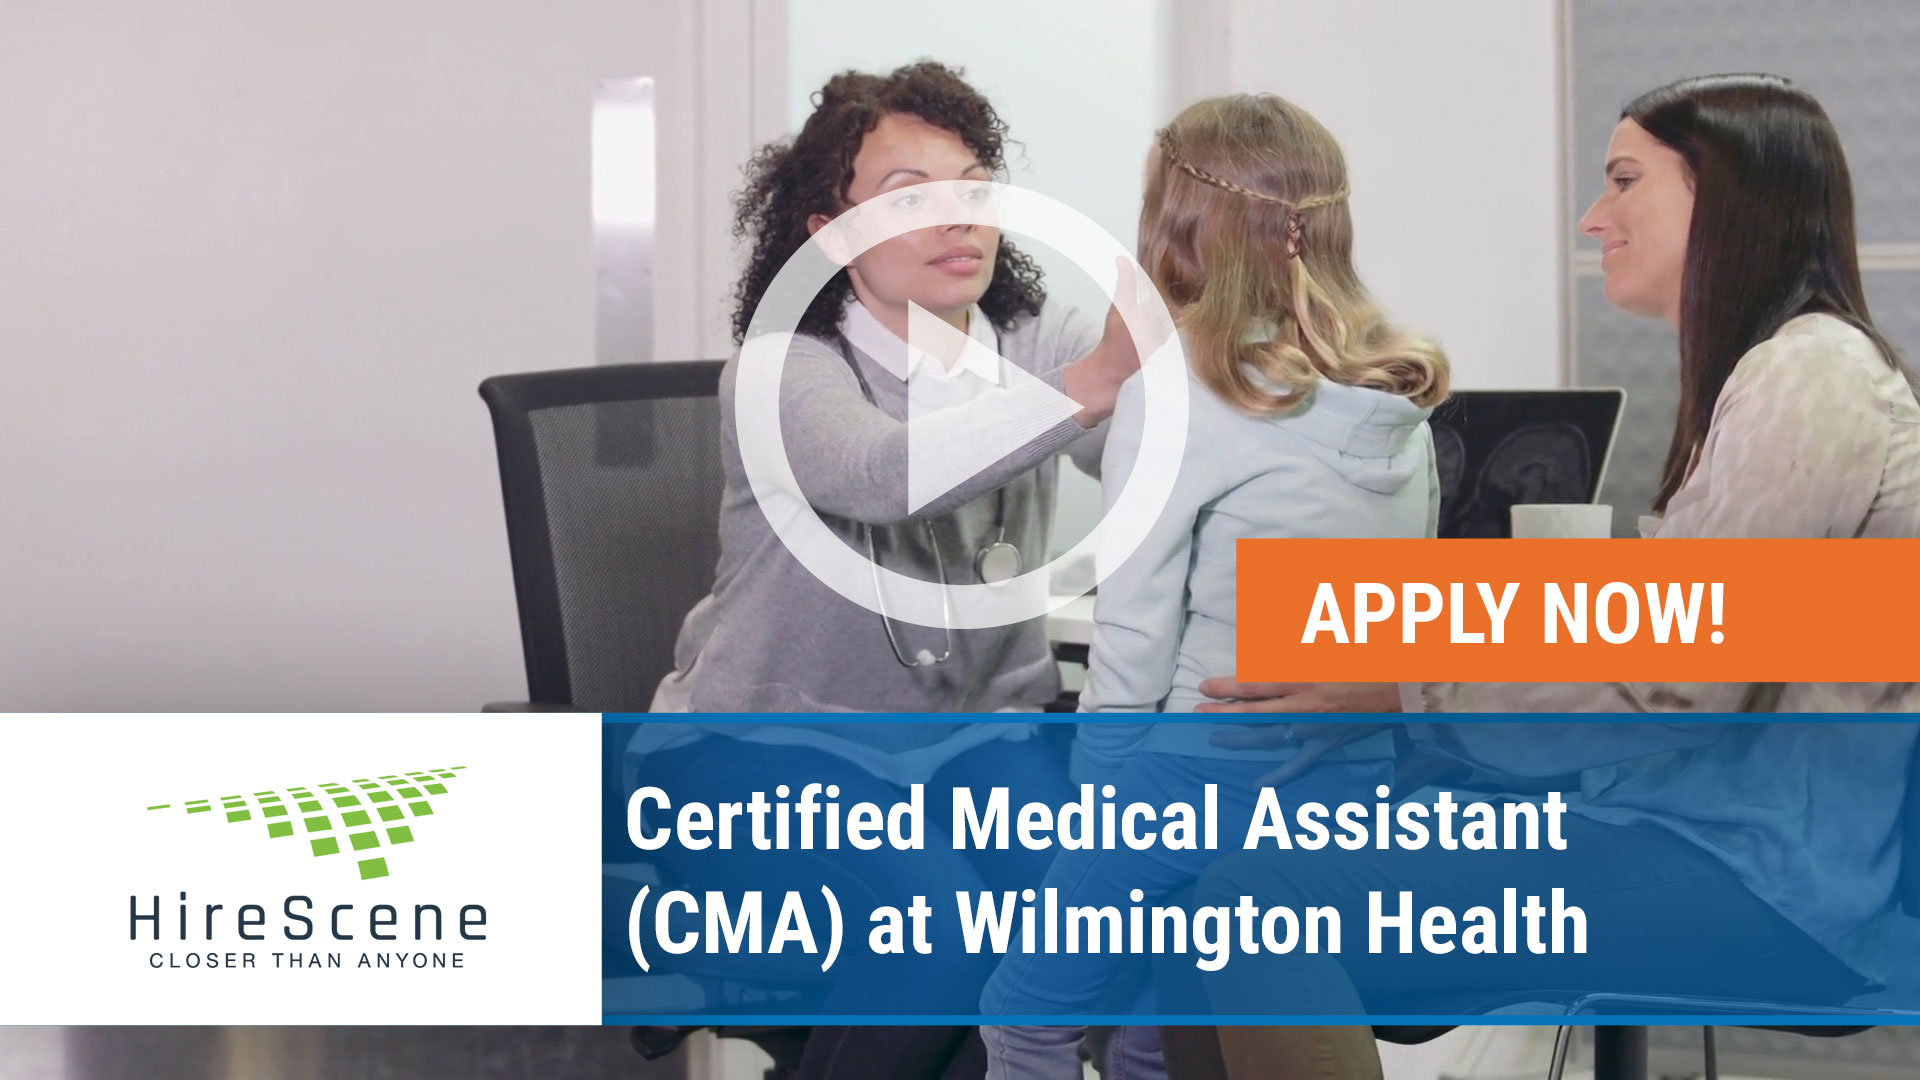 Watch our careers video for available job opening Certified Medical Assistant (CMA) at Wilmington Health in Wilmington/ Jacksonville and Leland, North Carolina